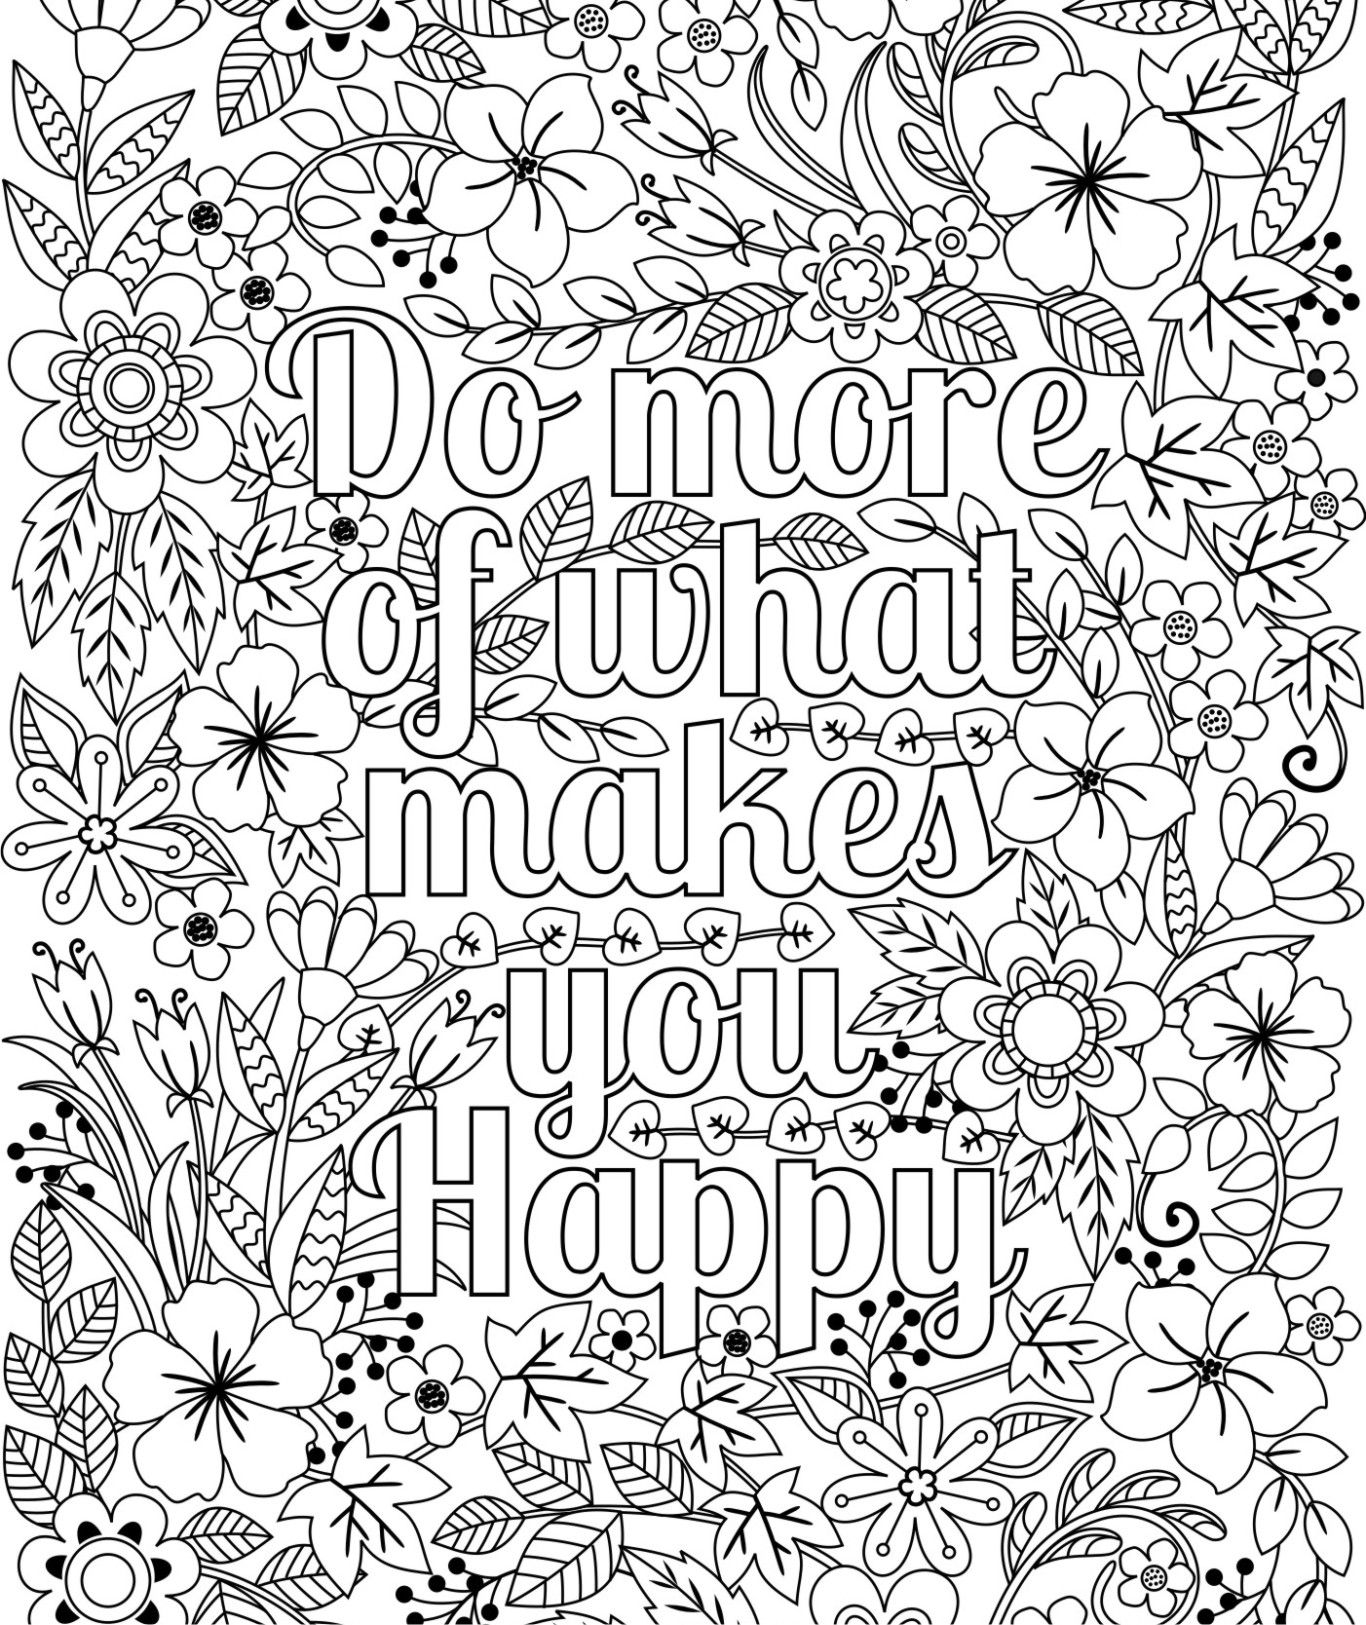 Printable \'Do More of What Makes You Happy\' flower design coloring ...